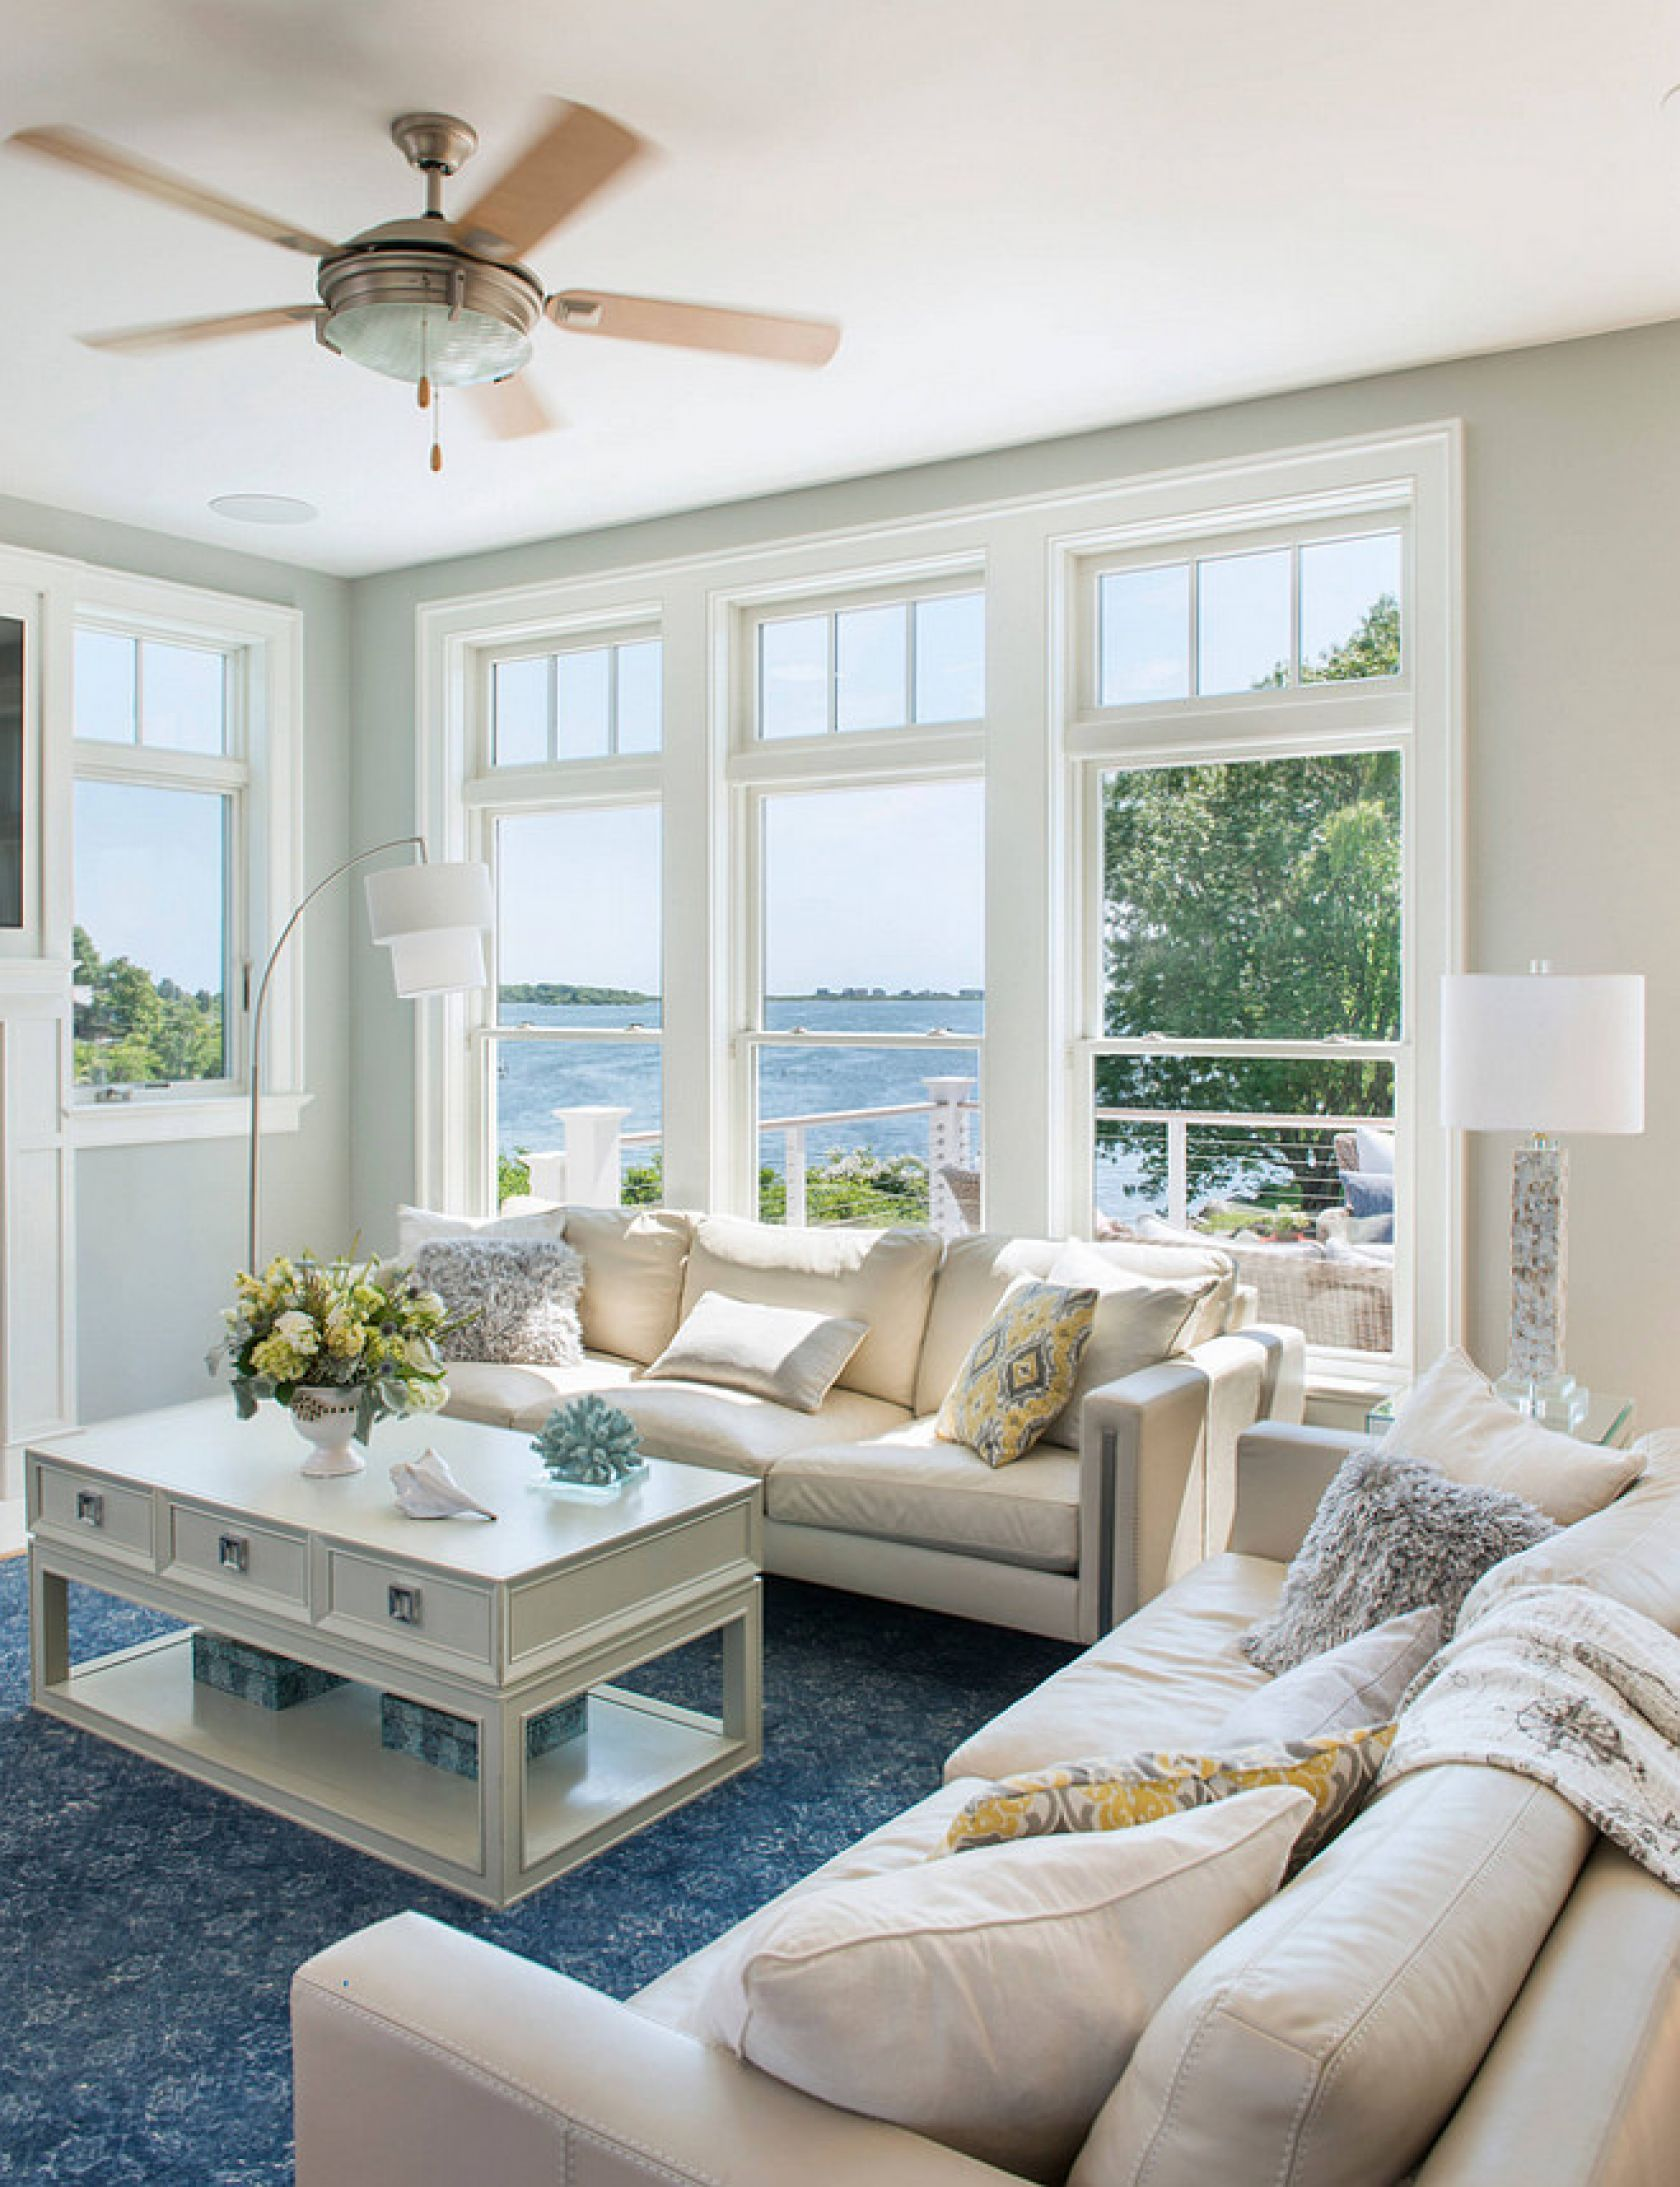 rhode island beach cottage living room cottage living on best colors for home interior id=87164